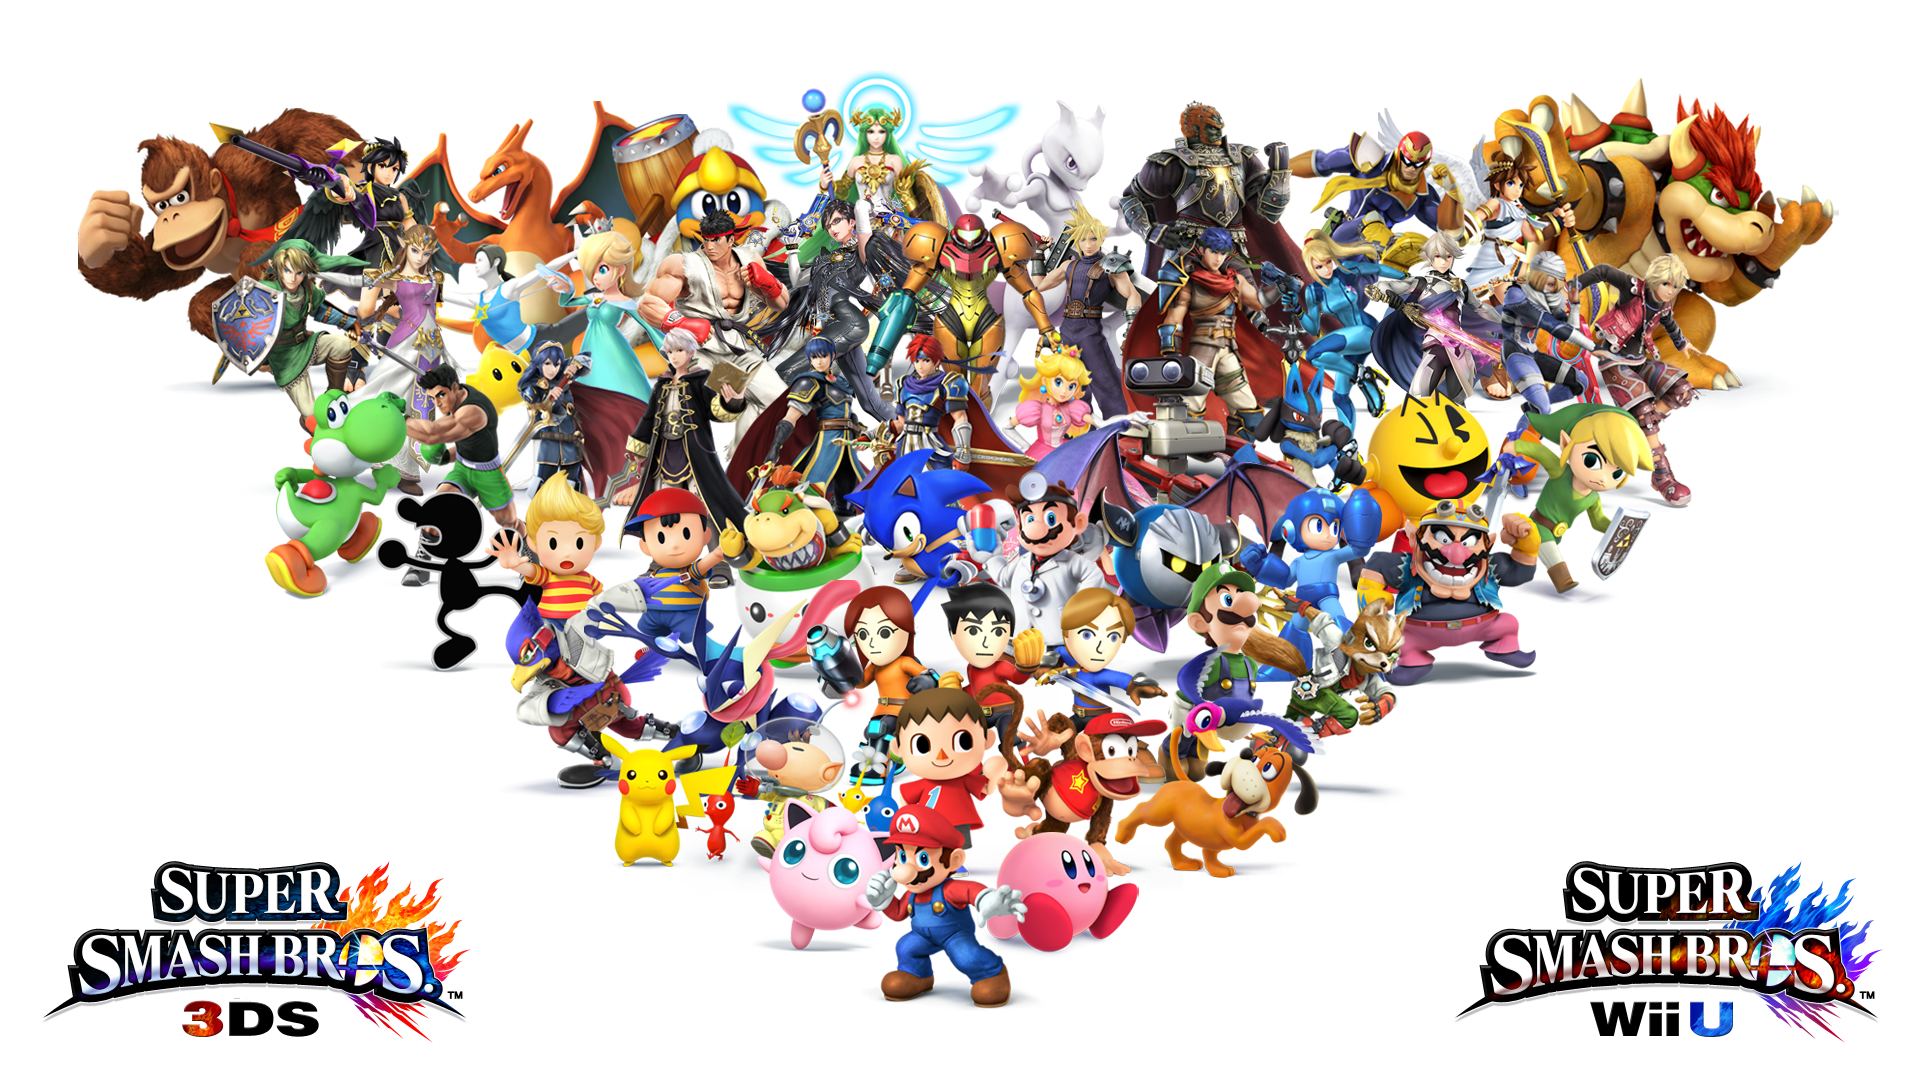 Wallpaper Wiki Free Download Super Smash Bros Hd Wallpaper Pic